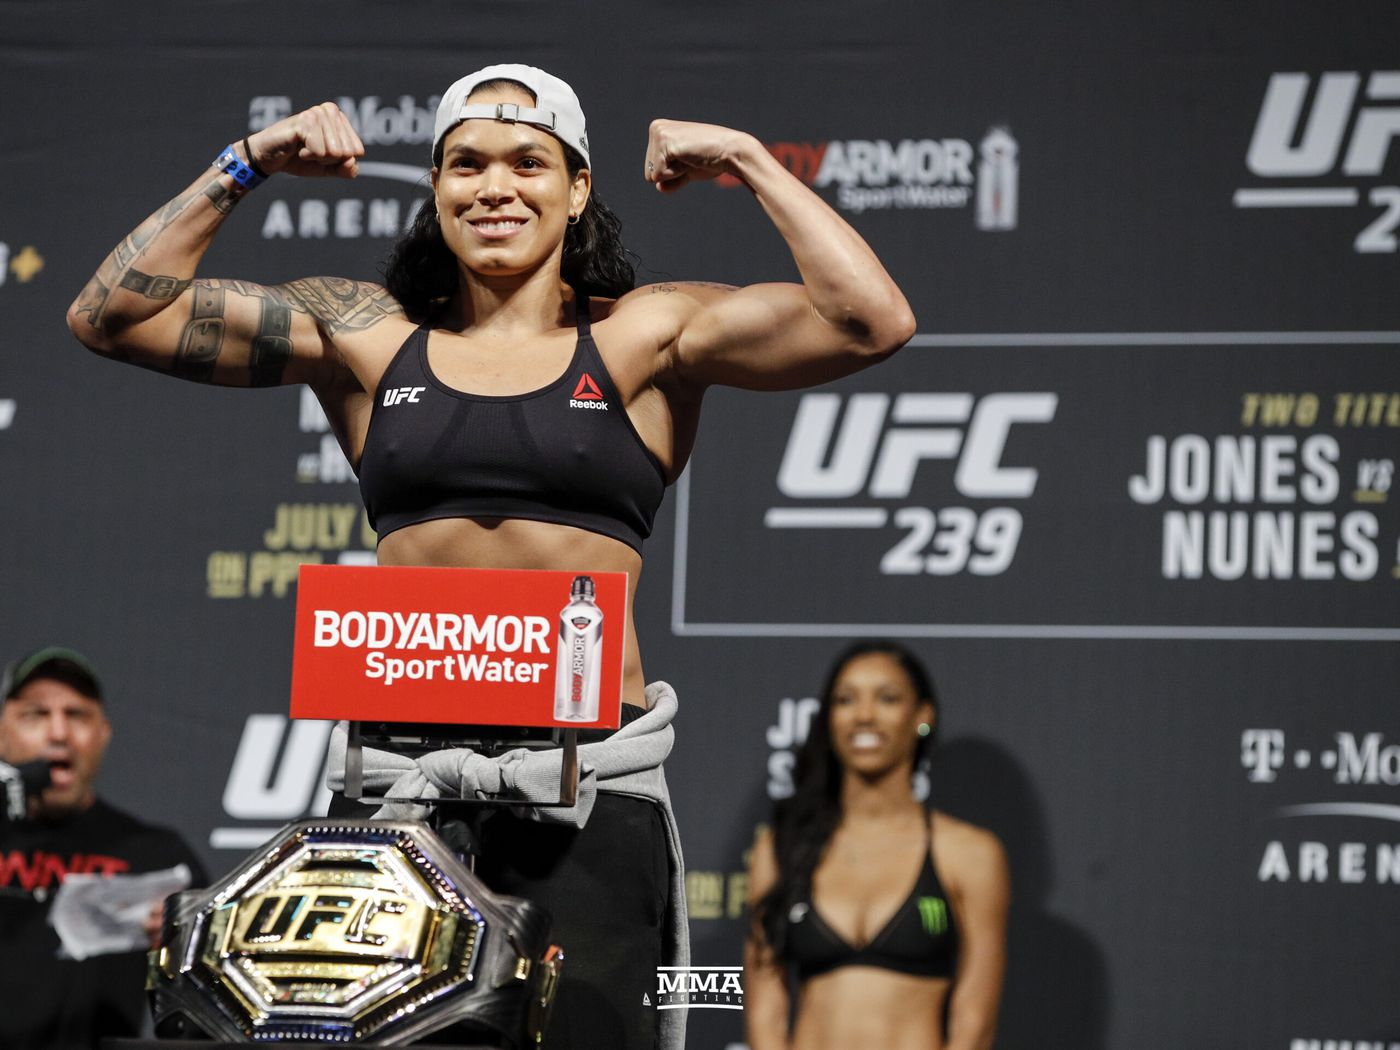 UFC 250 weigh-in results: Amanda Nunes, Felicia Spencer make weight for championship tilt - MMA Fighting